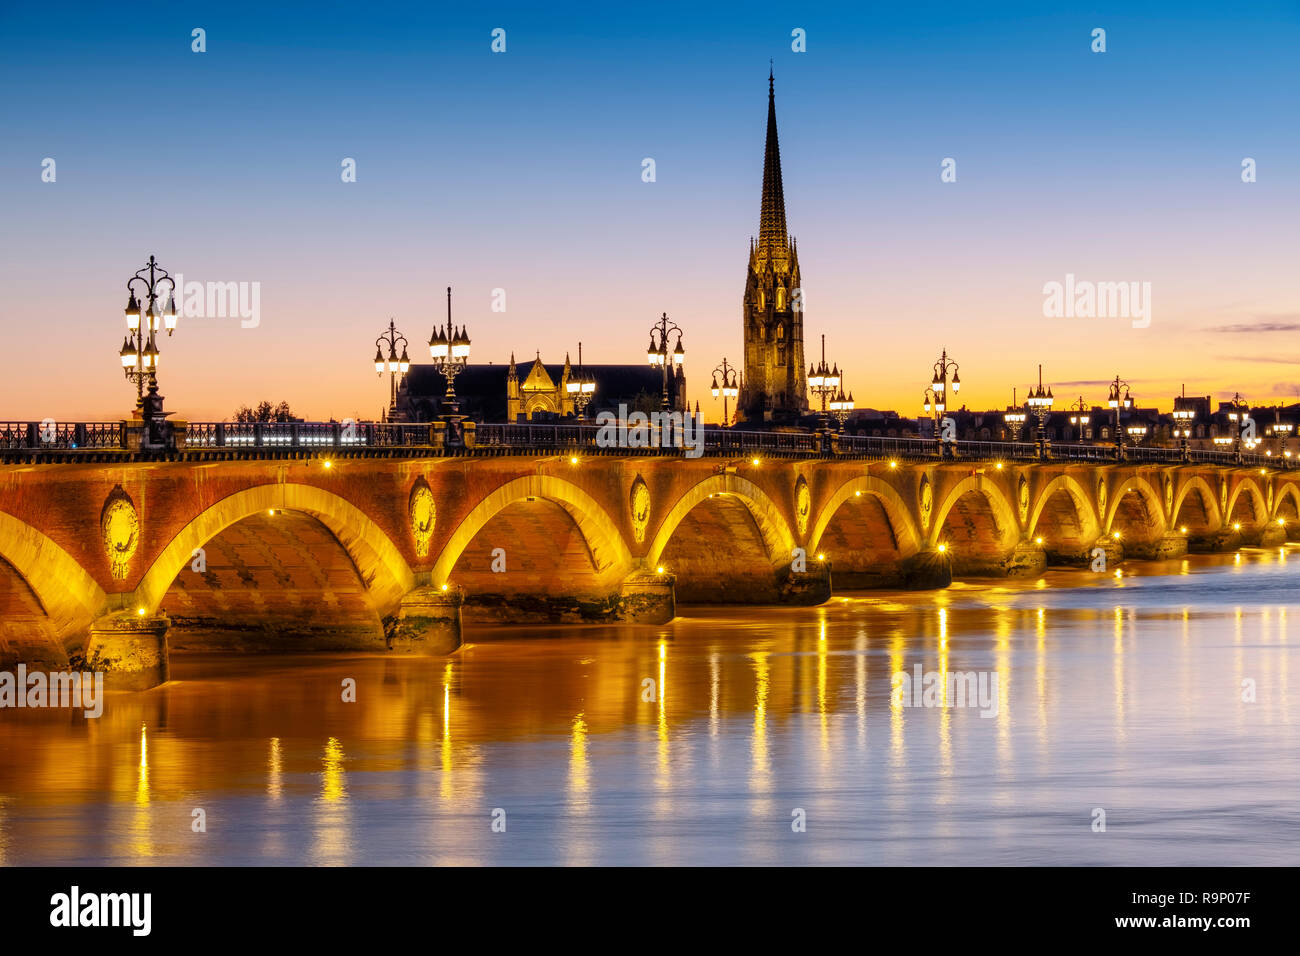 Pont de Pierre at dusk. Stone Bridge & Garonne River. Bordeaux, Gironde. Aquitaine region. France Europe Stock Photo